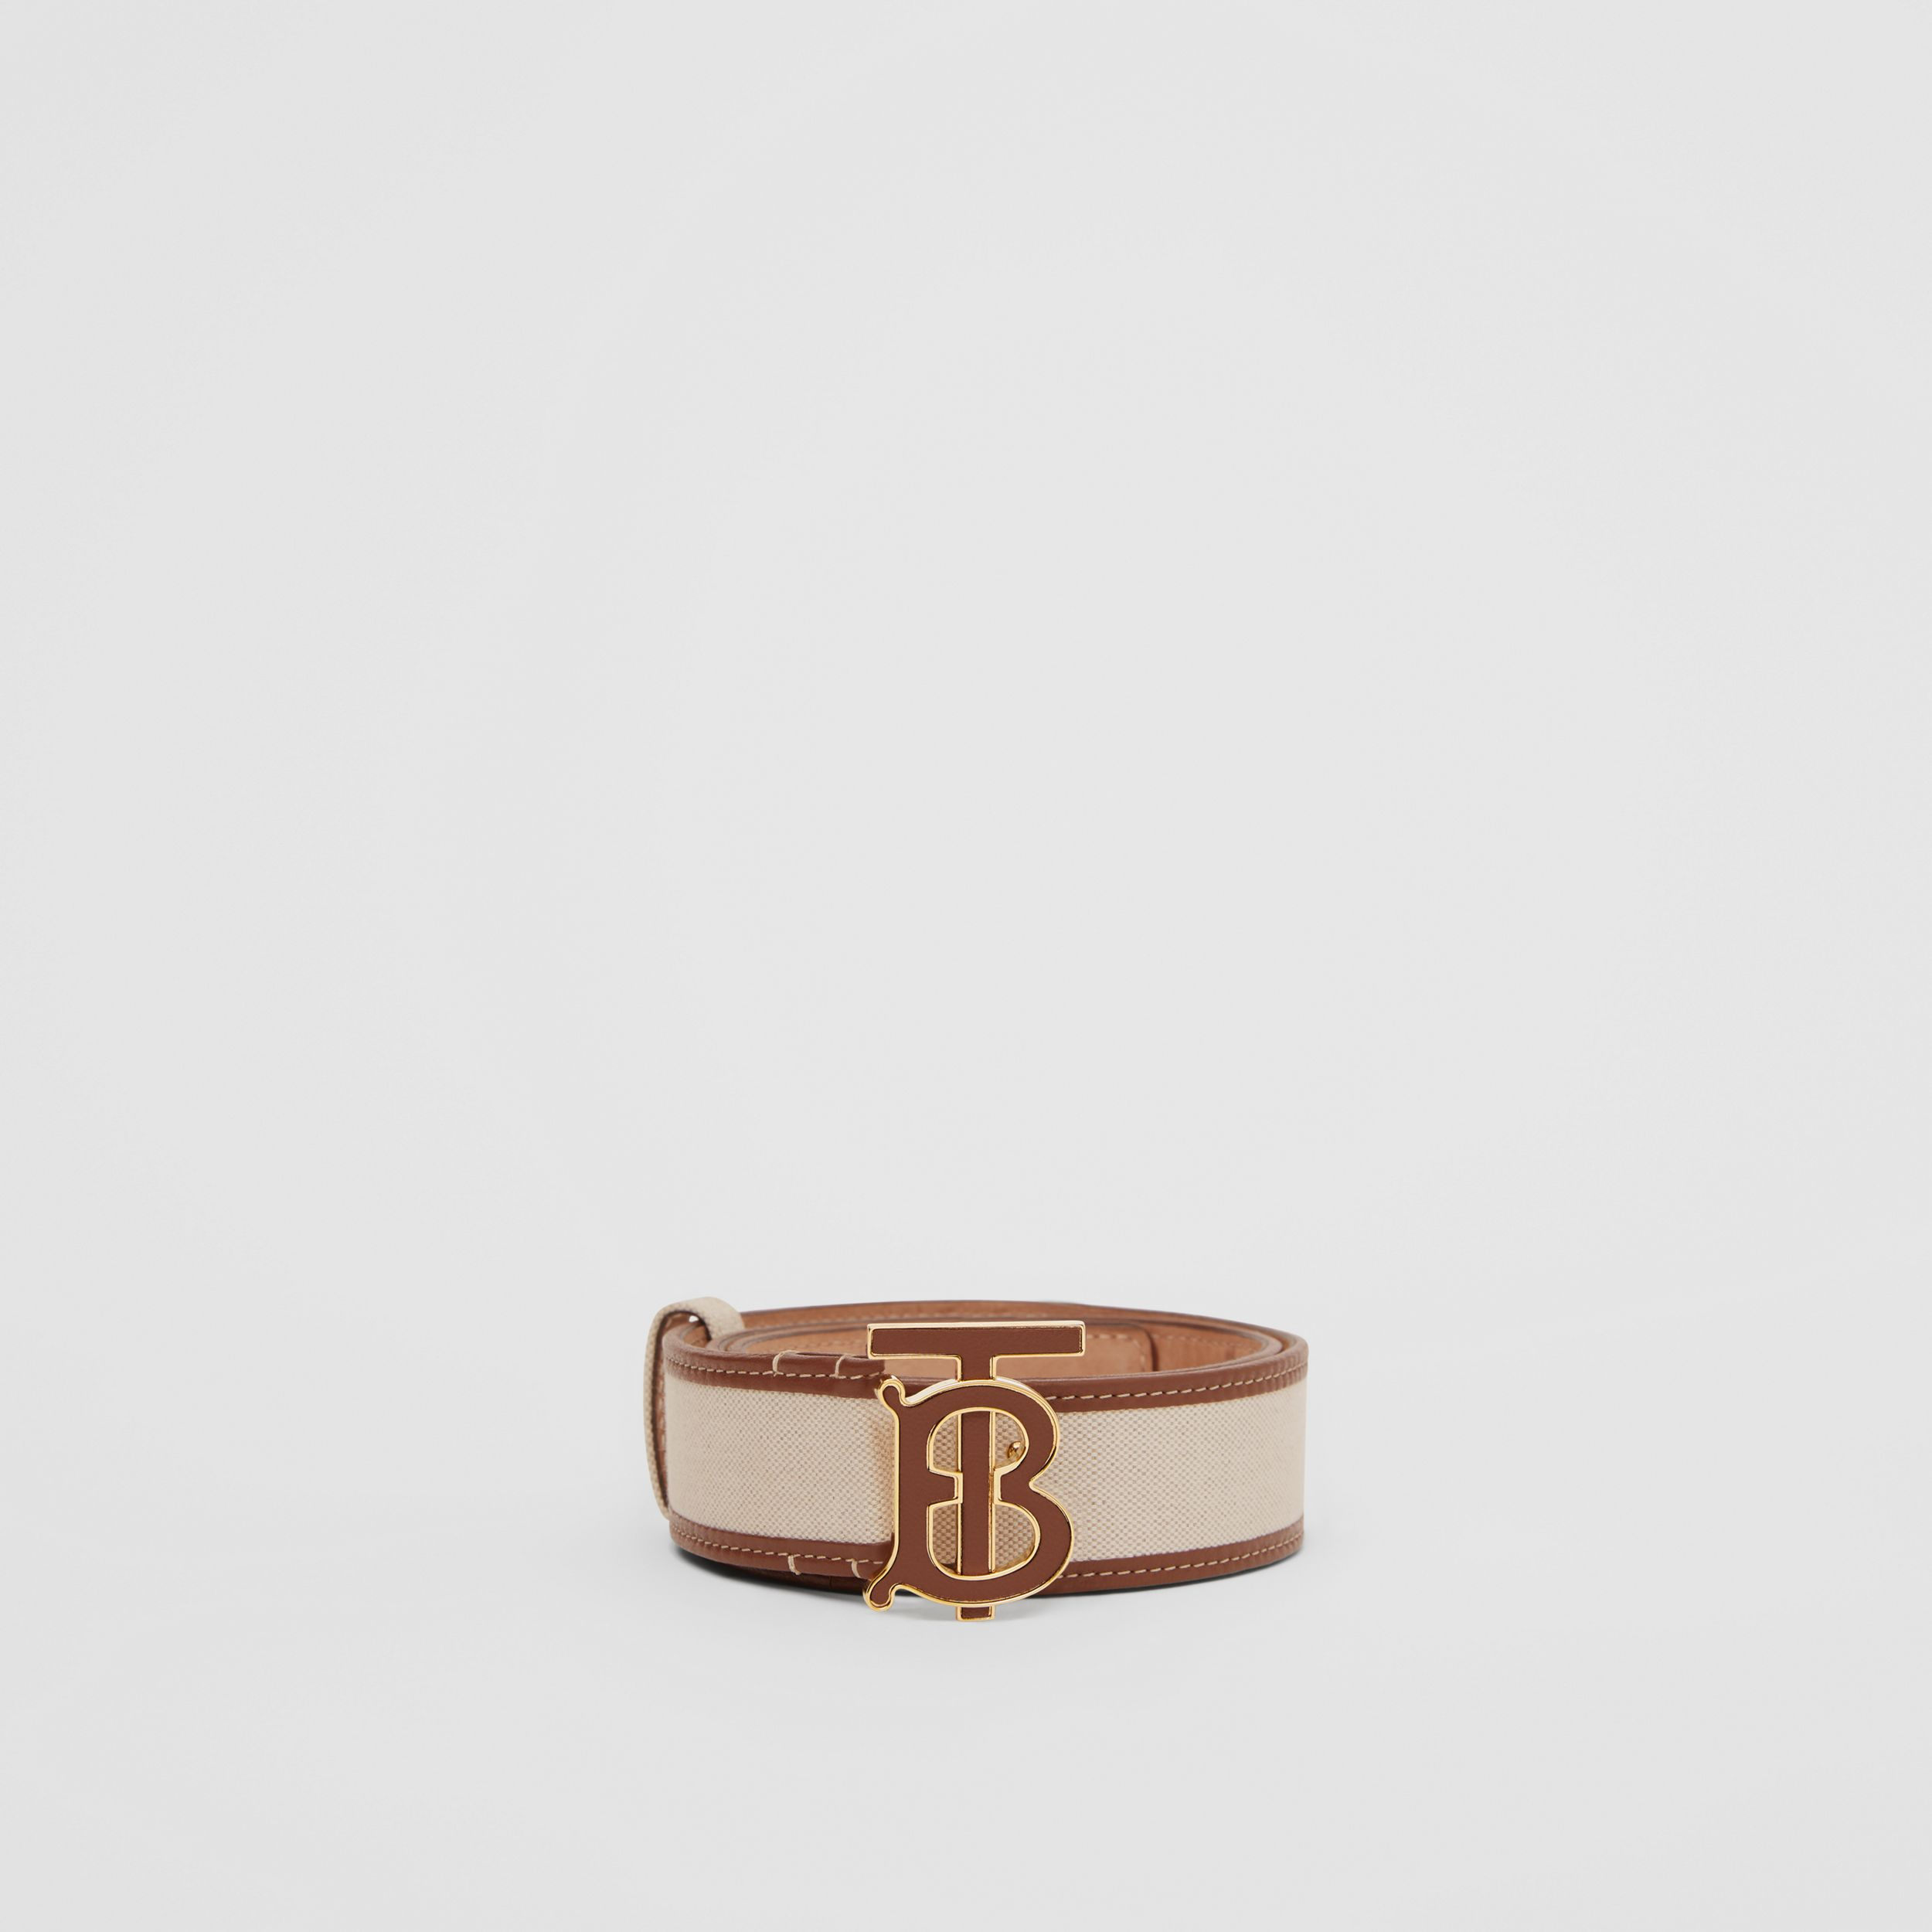 Monogram Motif Canvas and Leather Belt in Natural - Women | Burberry - 4